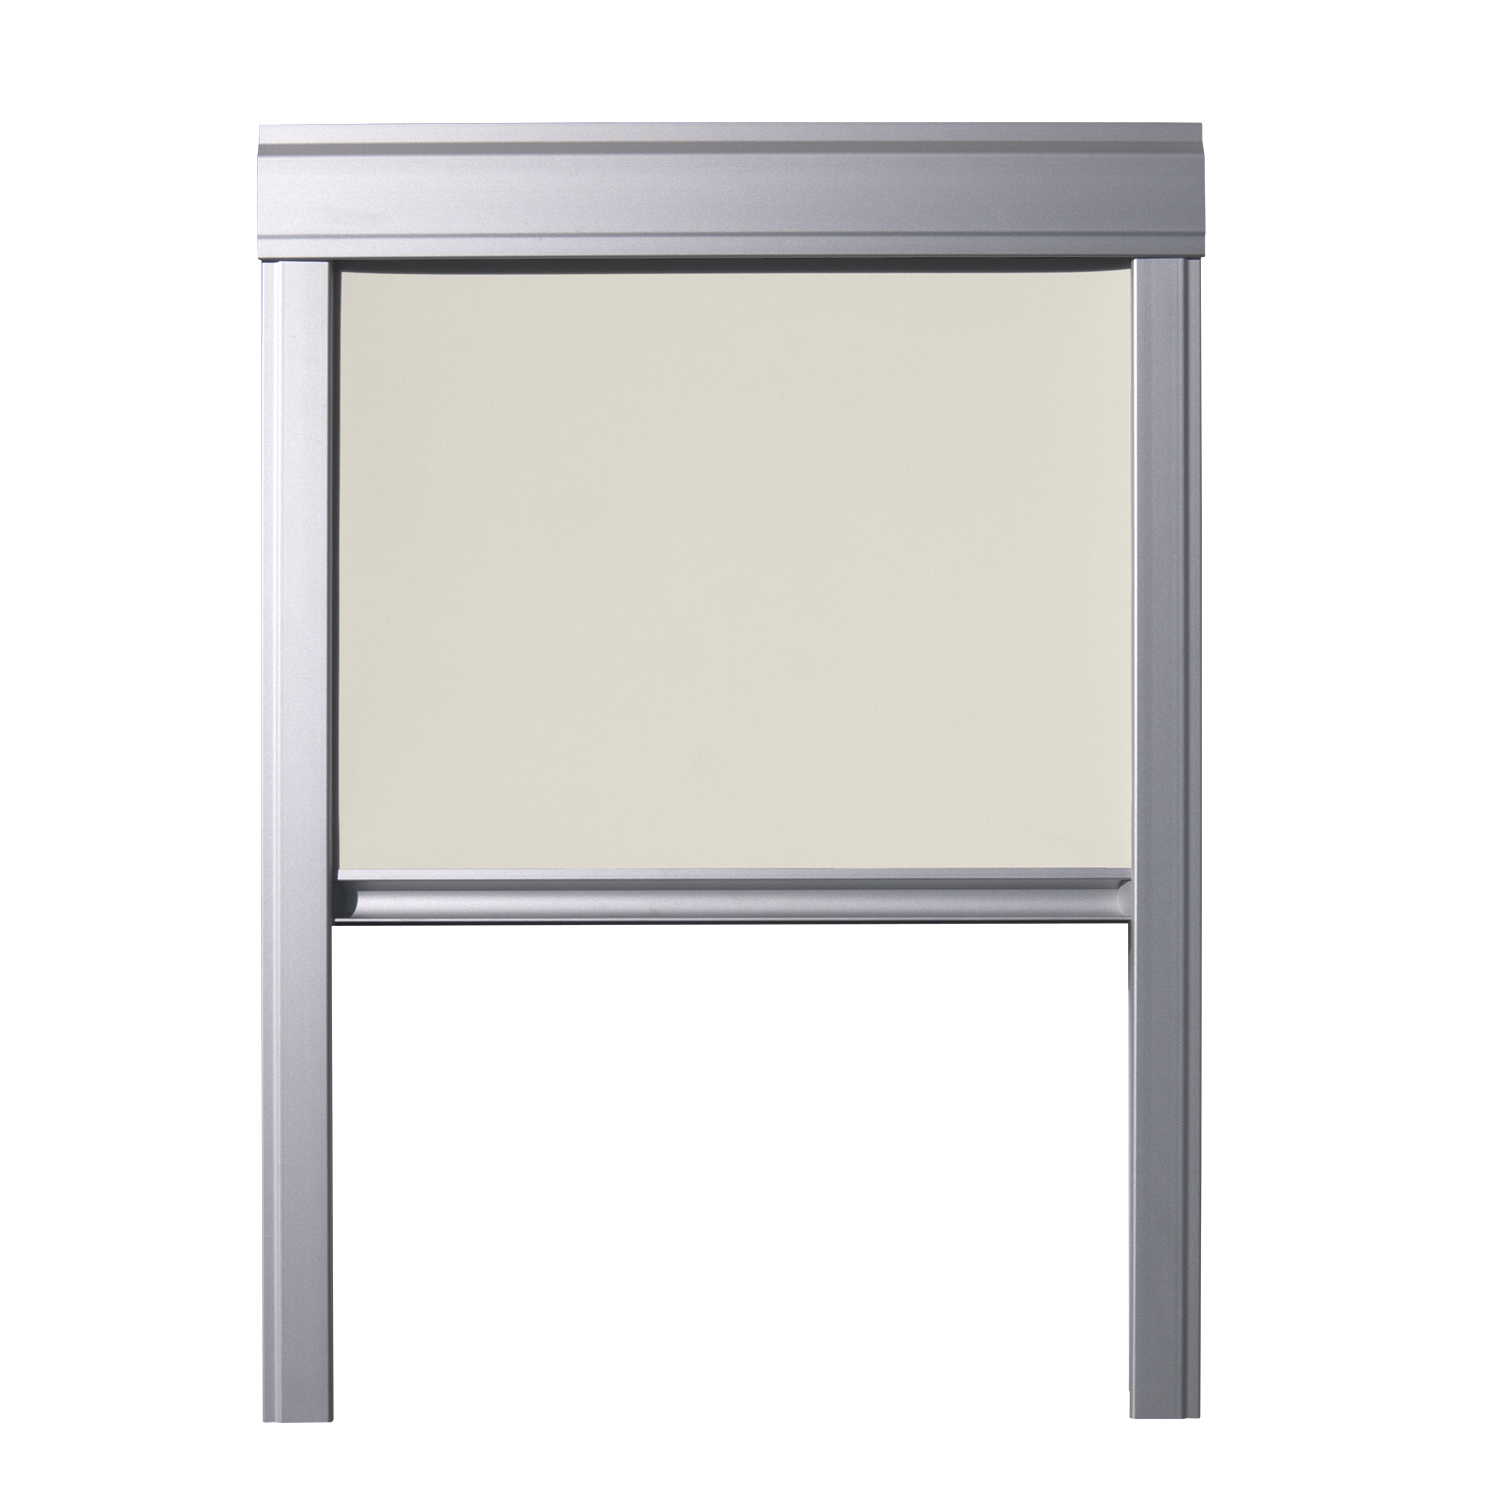 store occultant pour fen tre de toit velux en blanc gris beige et bleu fonc ebay. Black Bedroom Furniture Sets. Home Design Ideas